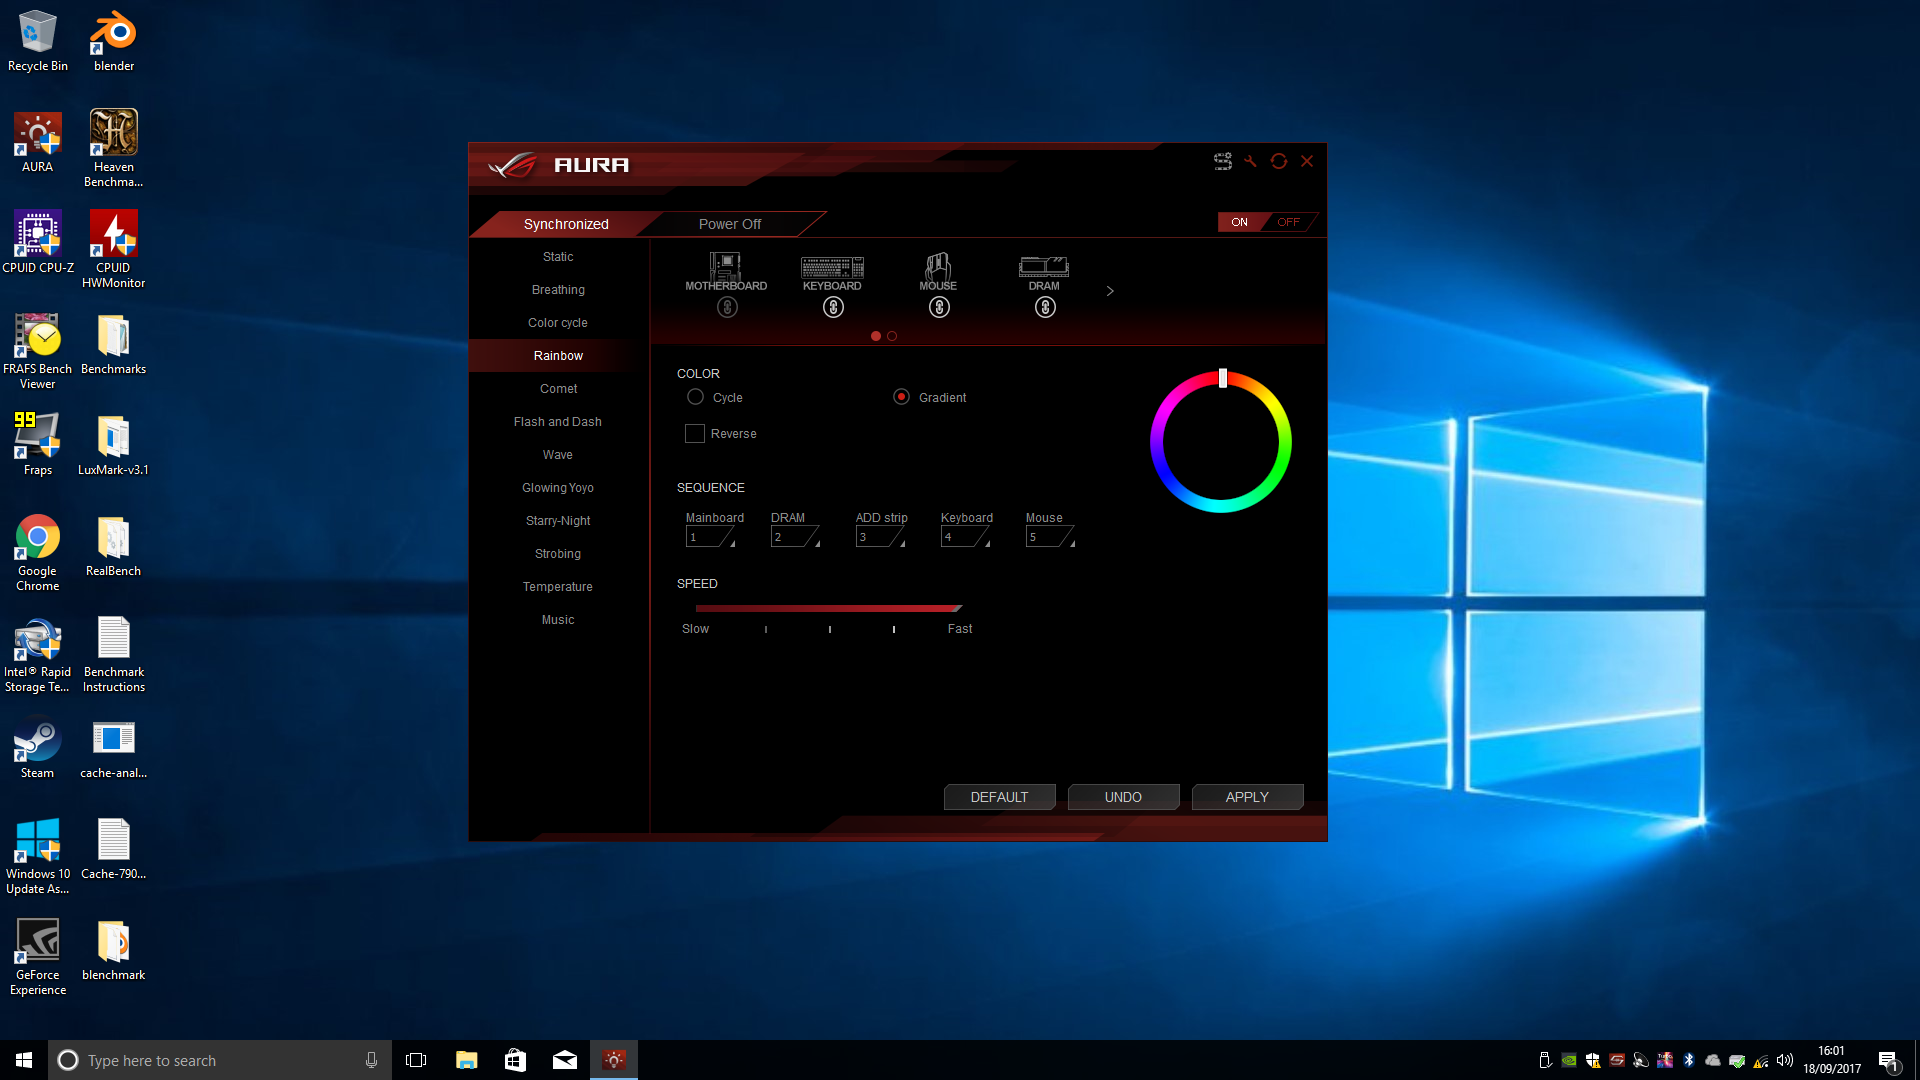 """The Asus Aura software isn't the best, but it works well enough. This what I like to call the """"unicorn vom"""" setting."""